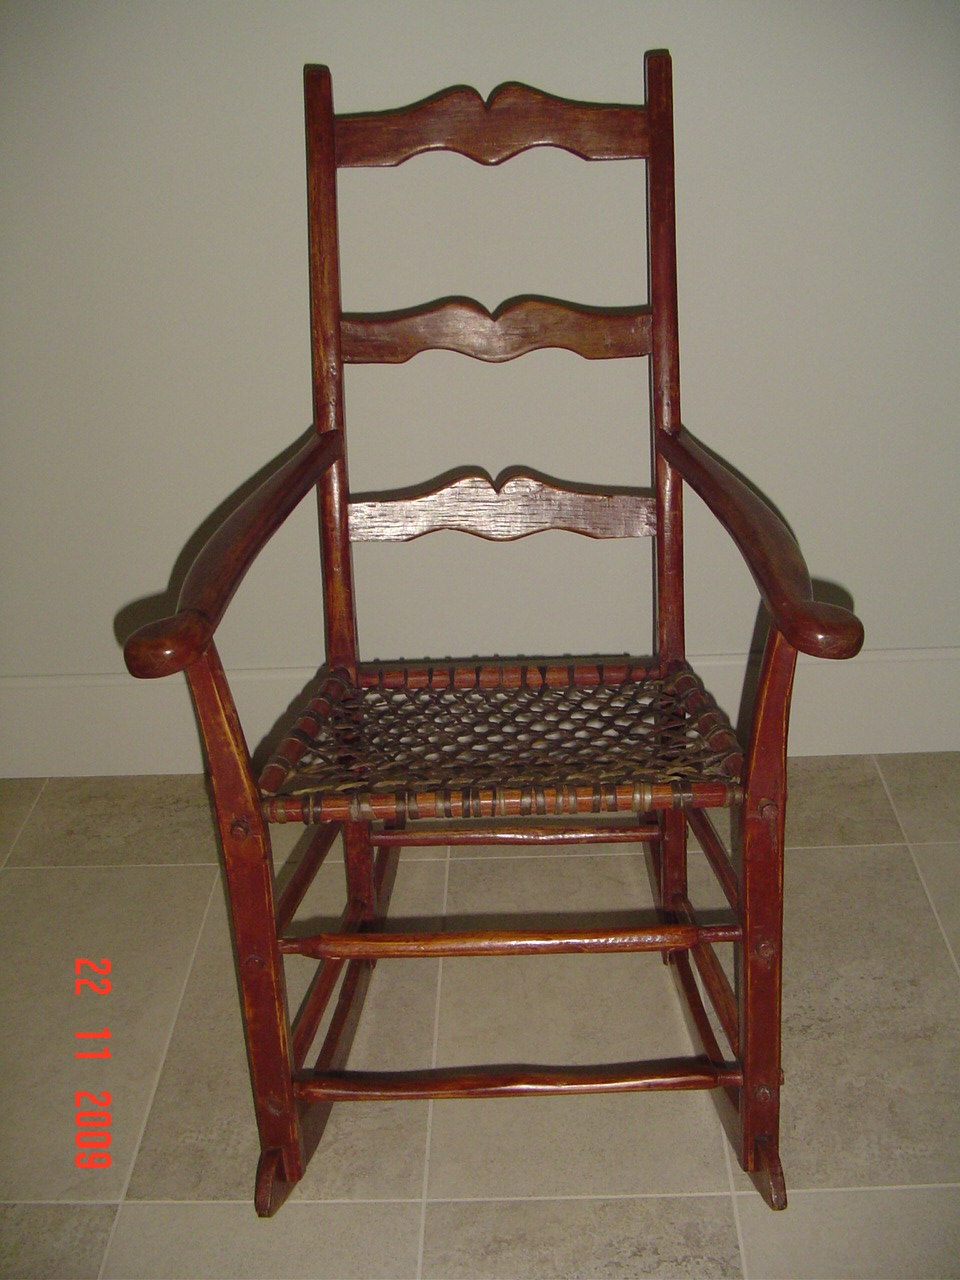 Primitive rocking chair canadian pine wood furniture for sale classifieds Wooden furniture canada